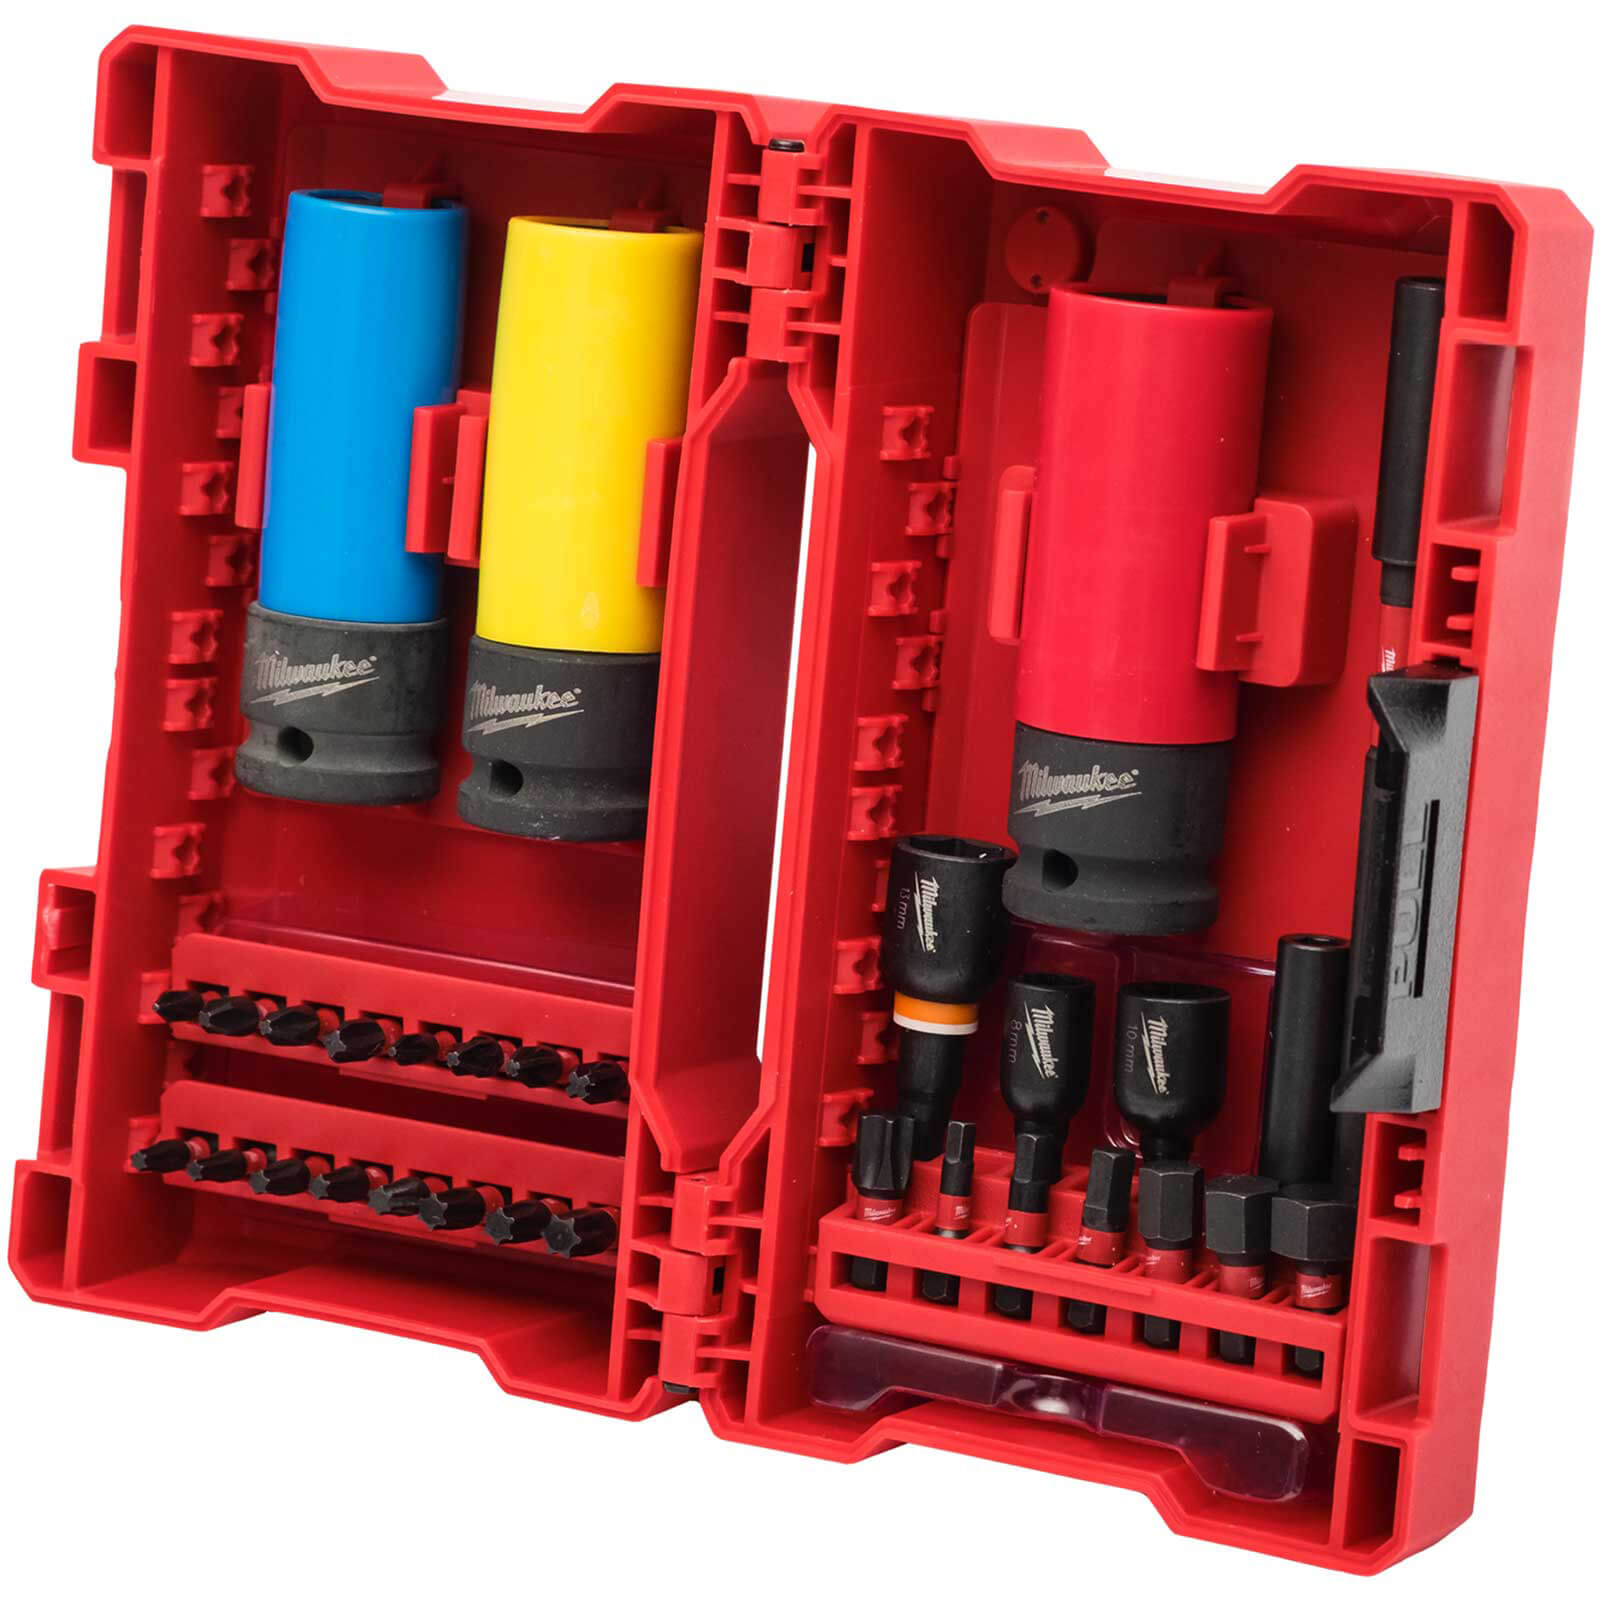 Image of Milwaukee 31 Piece Shockwave Impact Socket & Screwdriver Bit Set